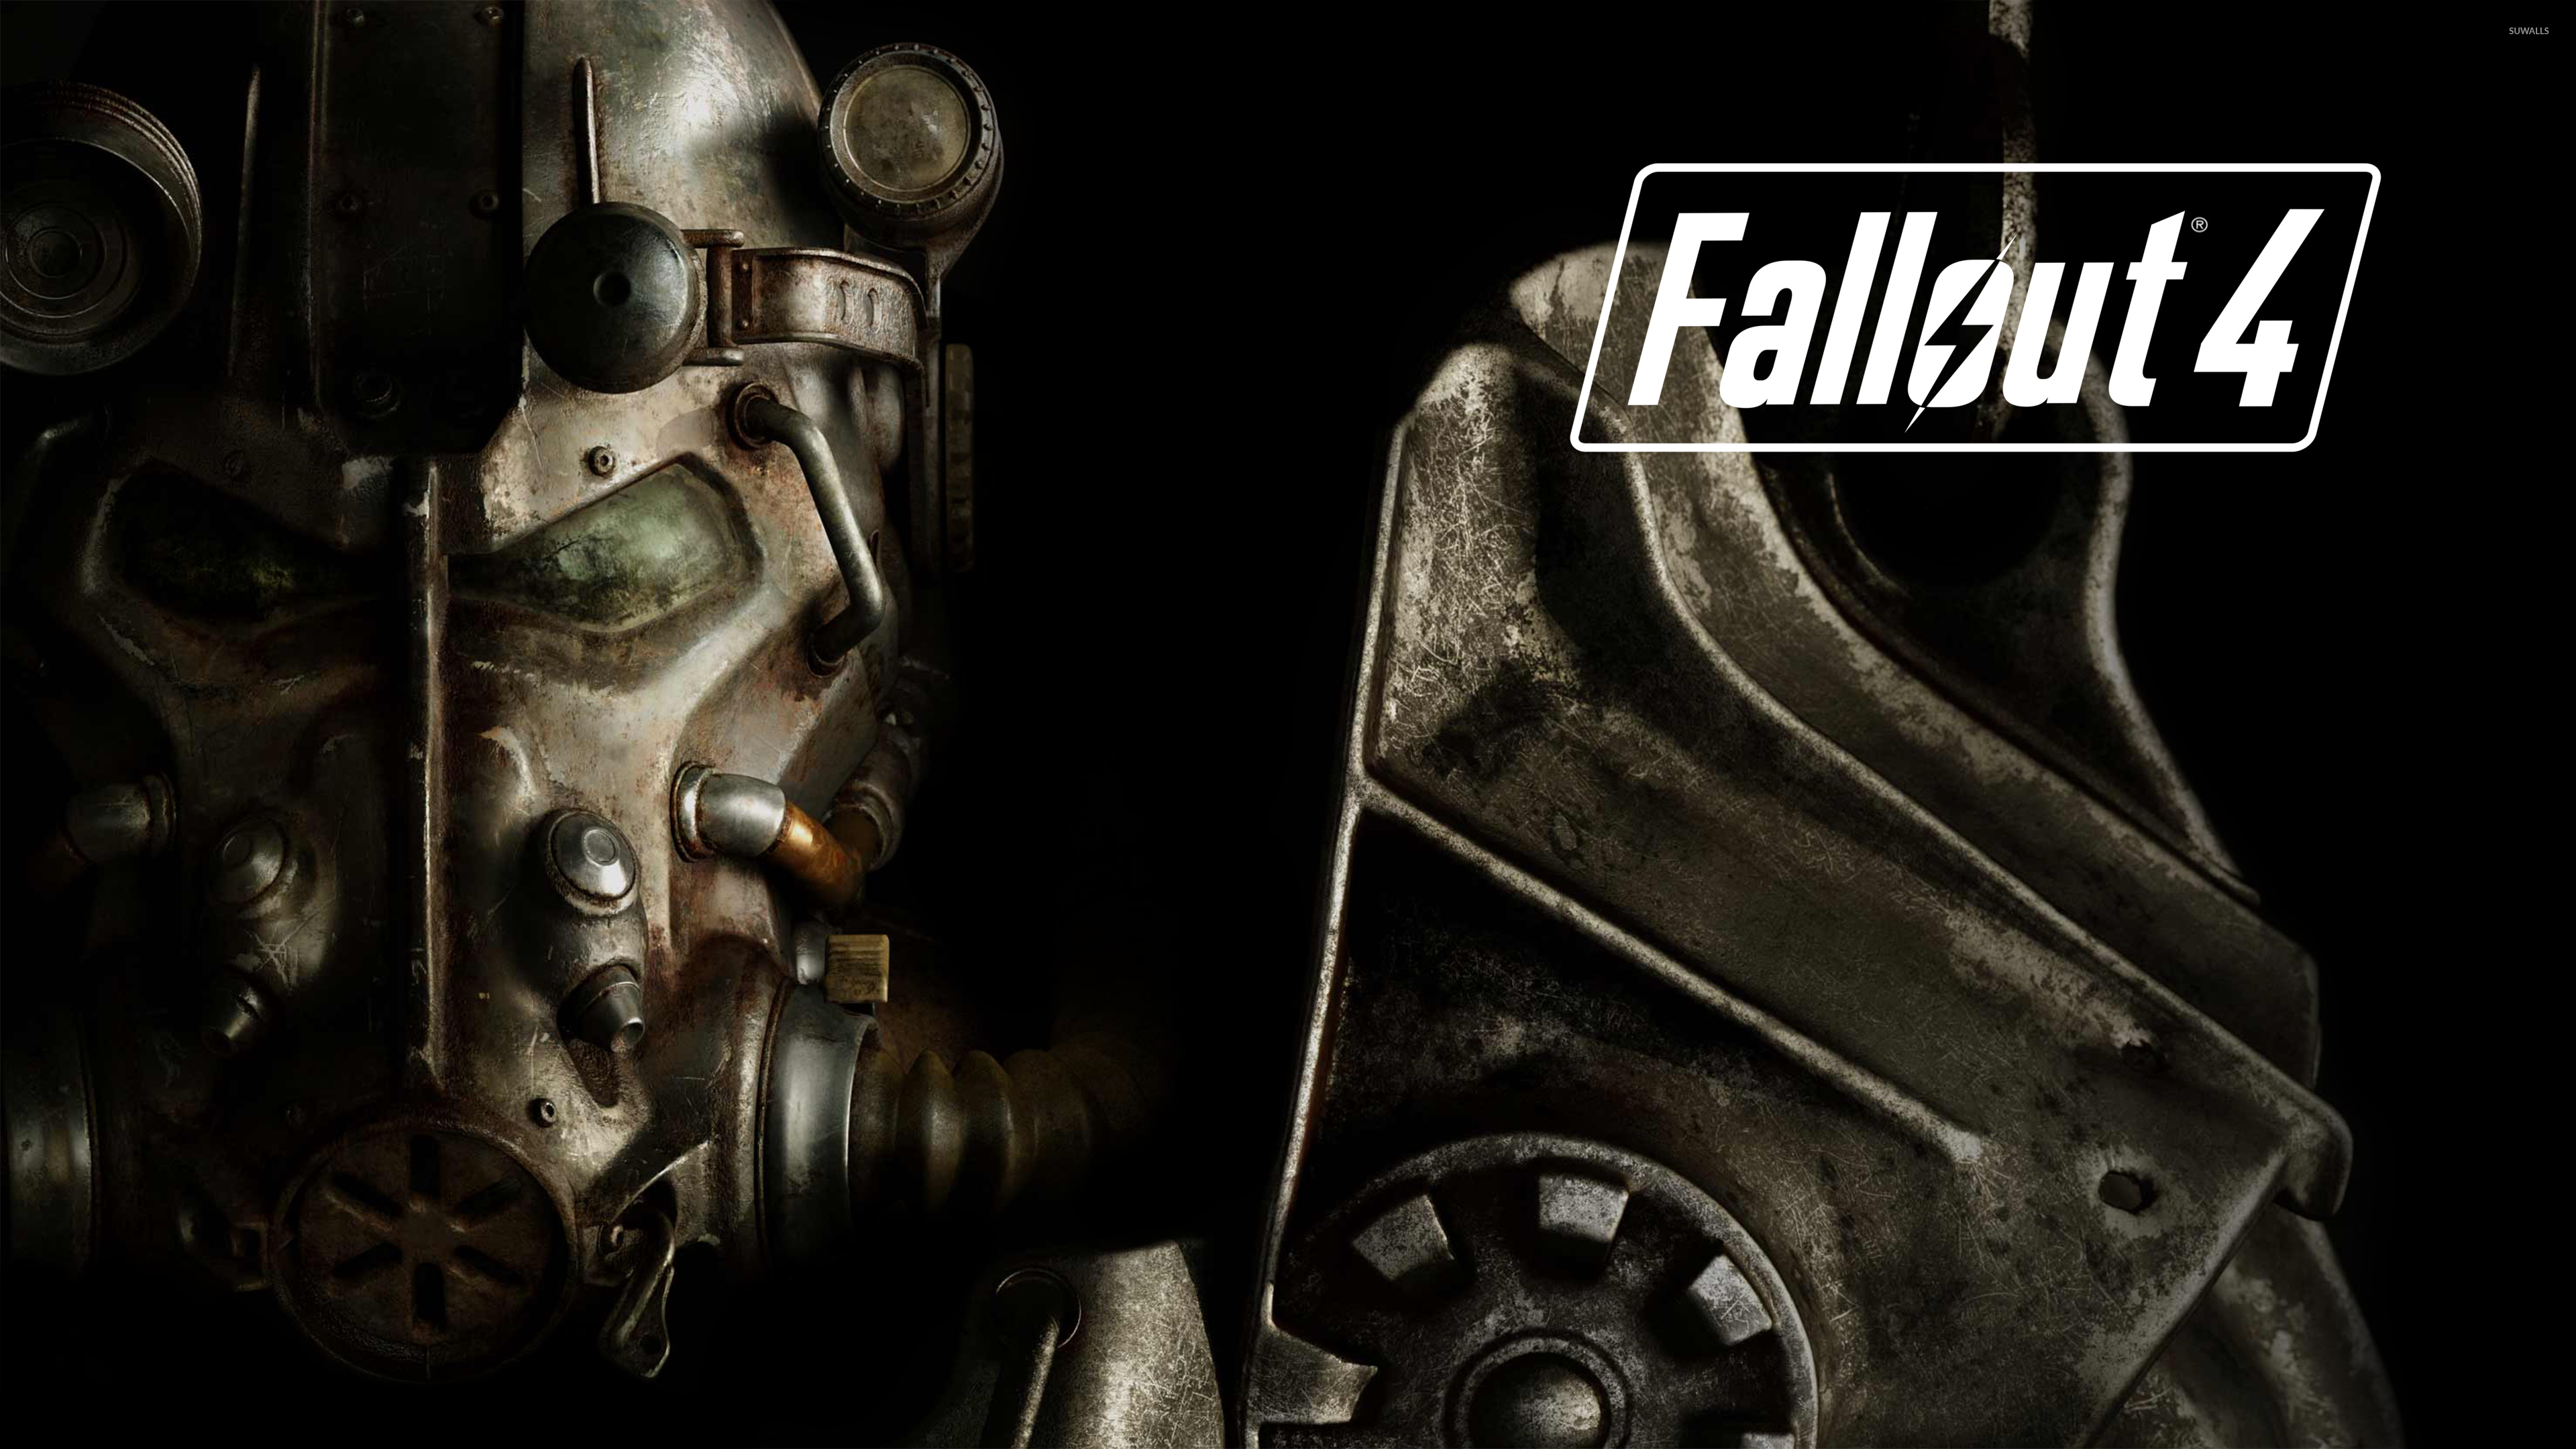 Fall Hd Wallpapers 1080p Widescreen Fallout 4 Armor Wallpaper Game Wallpapers 49720